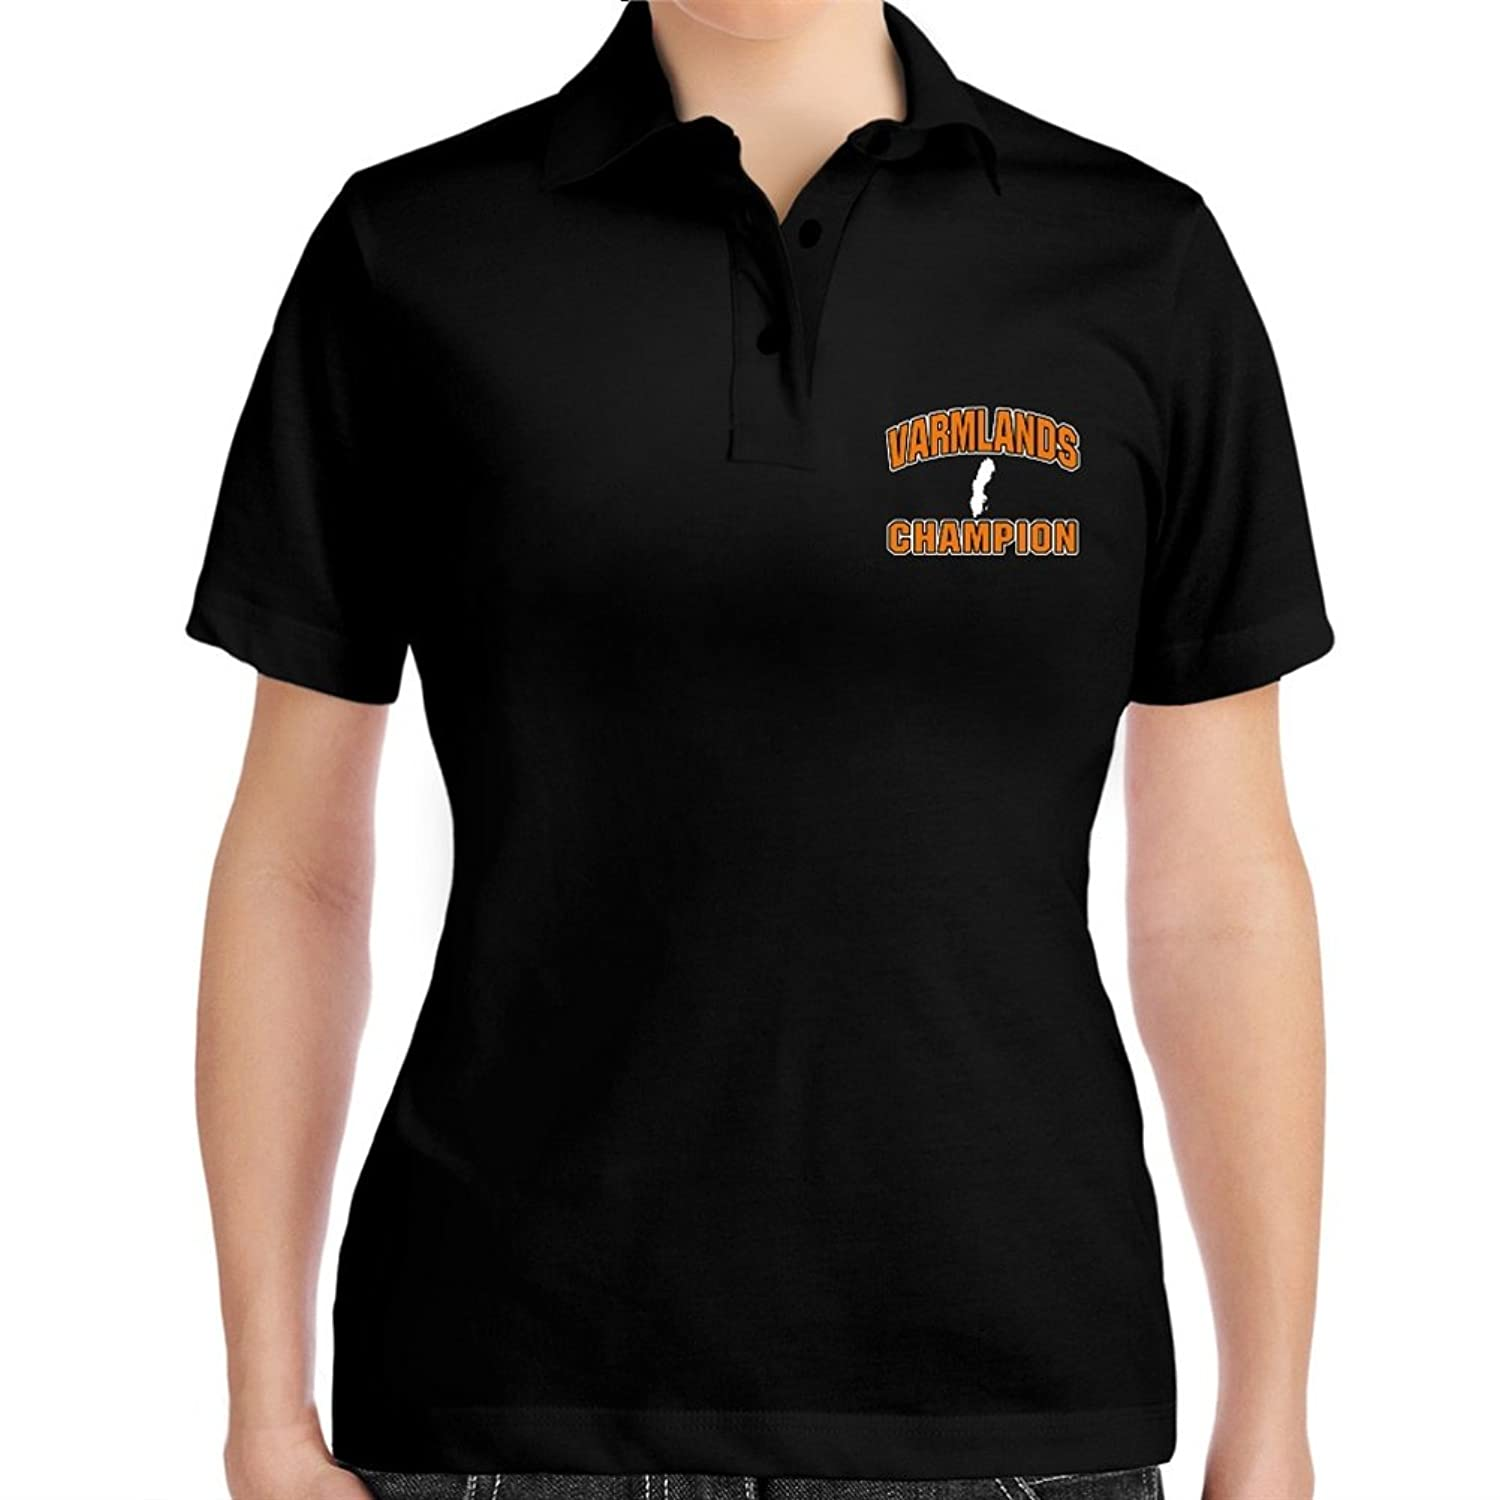 Varmlands champion Women Polo Shirt